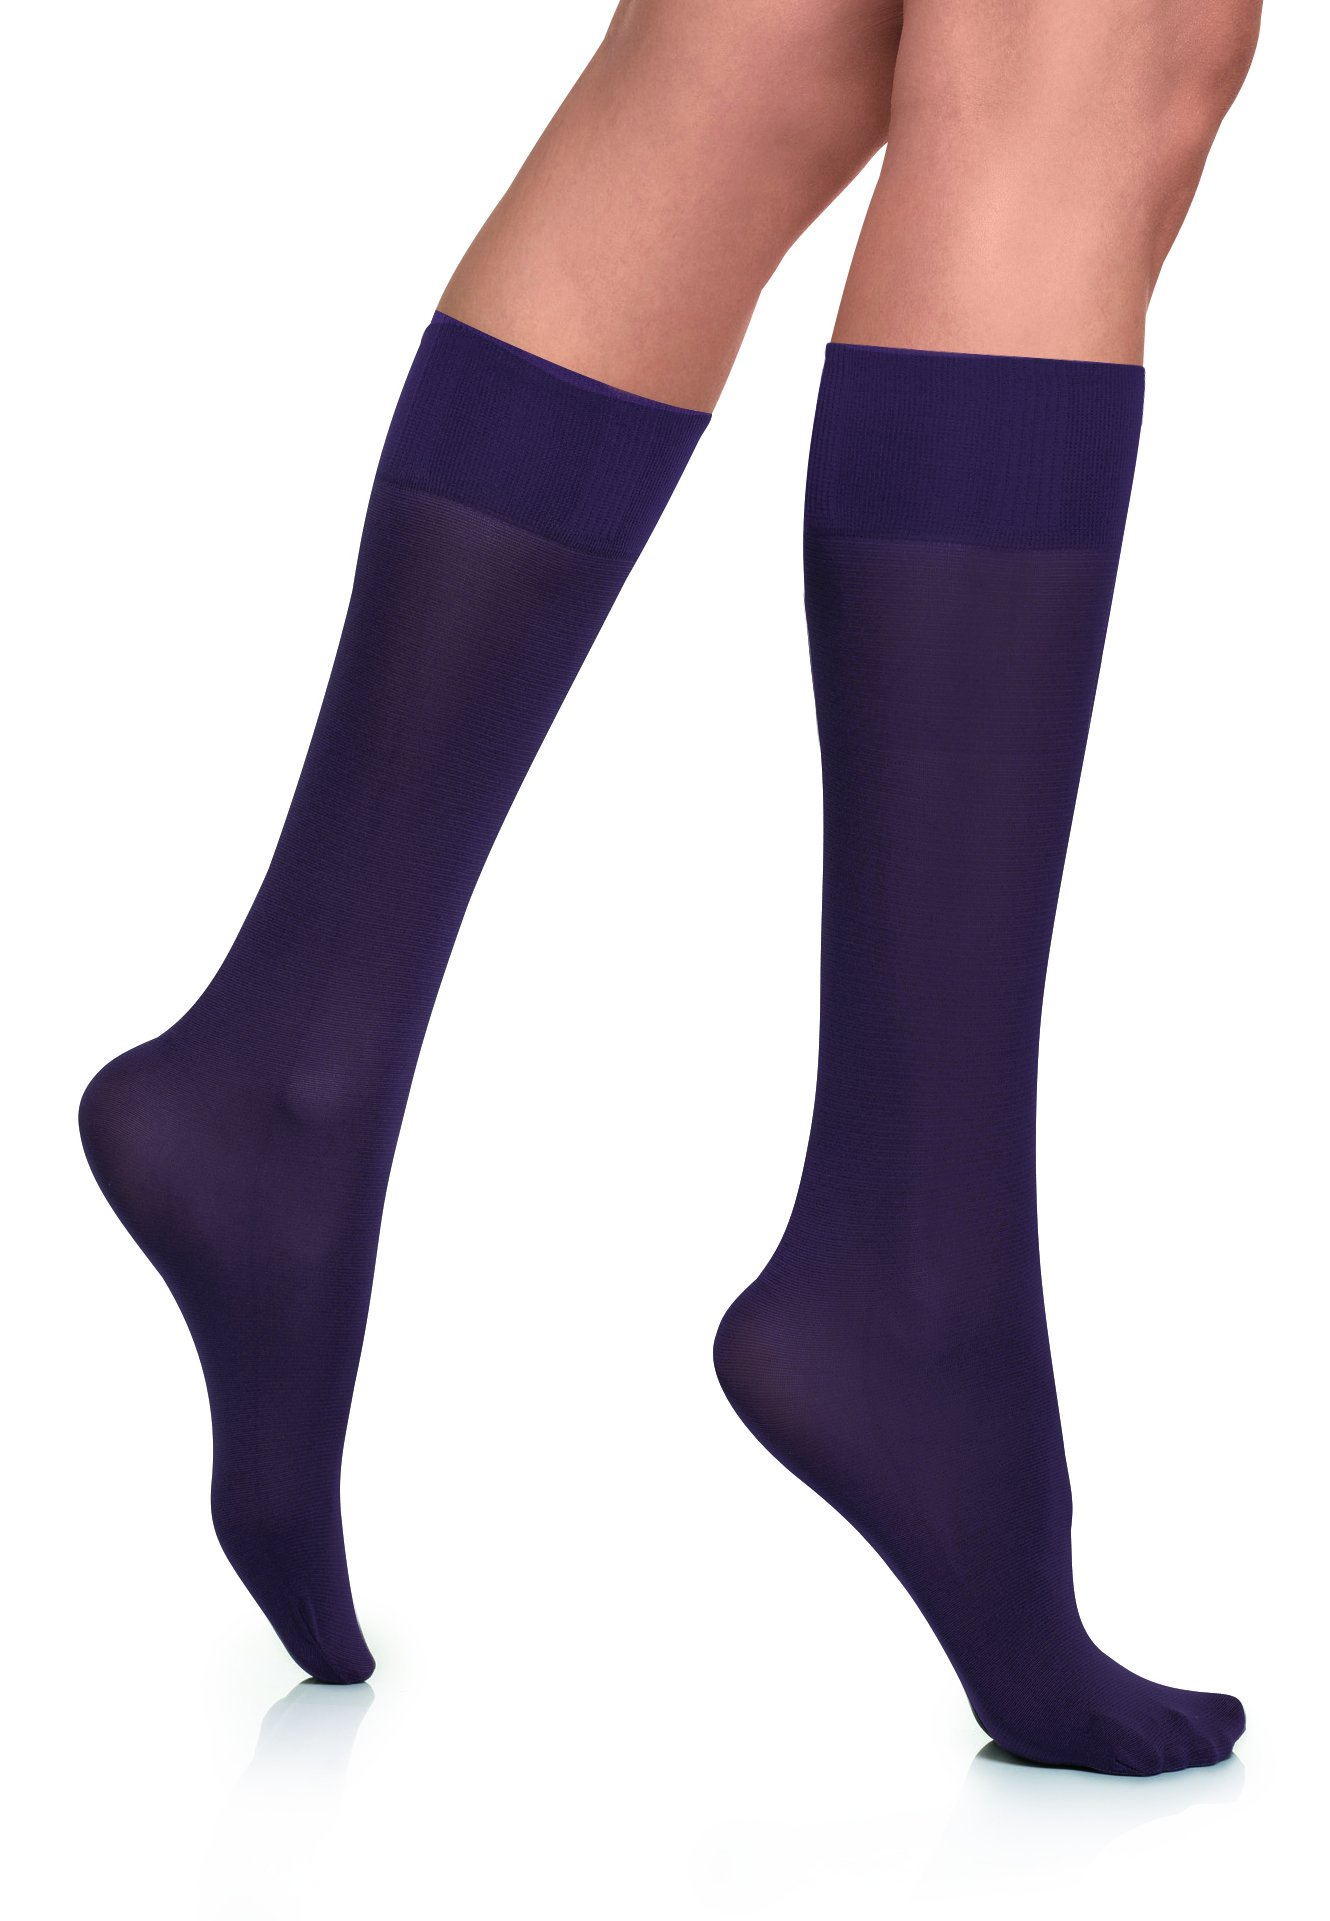 Lupo Loba Women's Comfort Top Opaque Knee High Socks, One-Size Eggplant 2 Pack